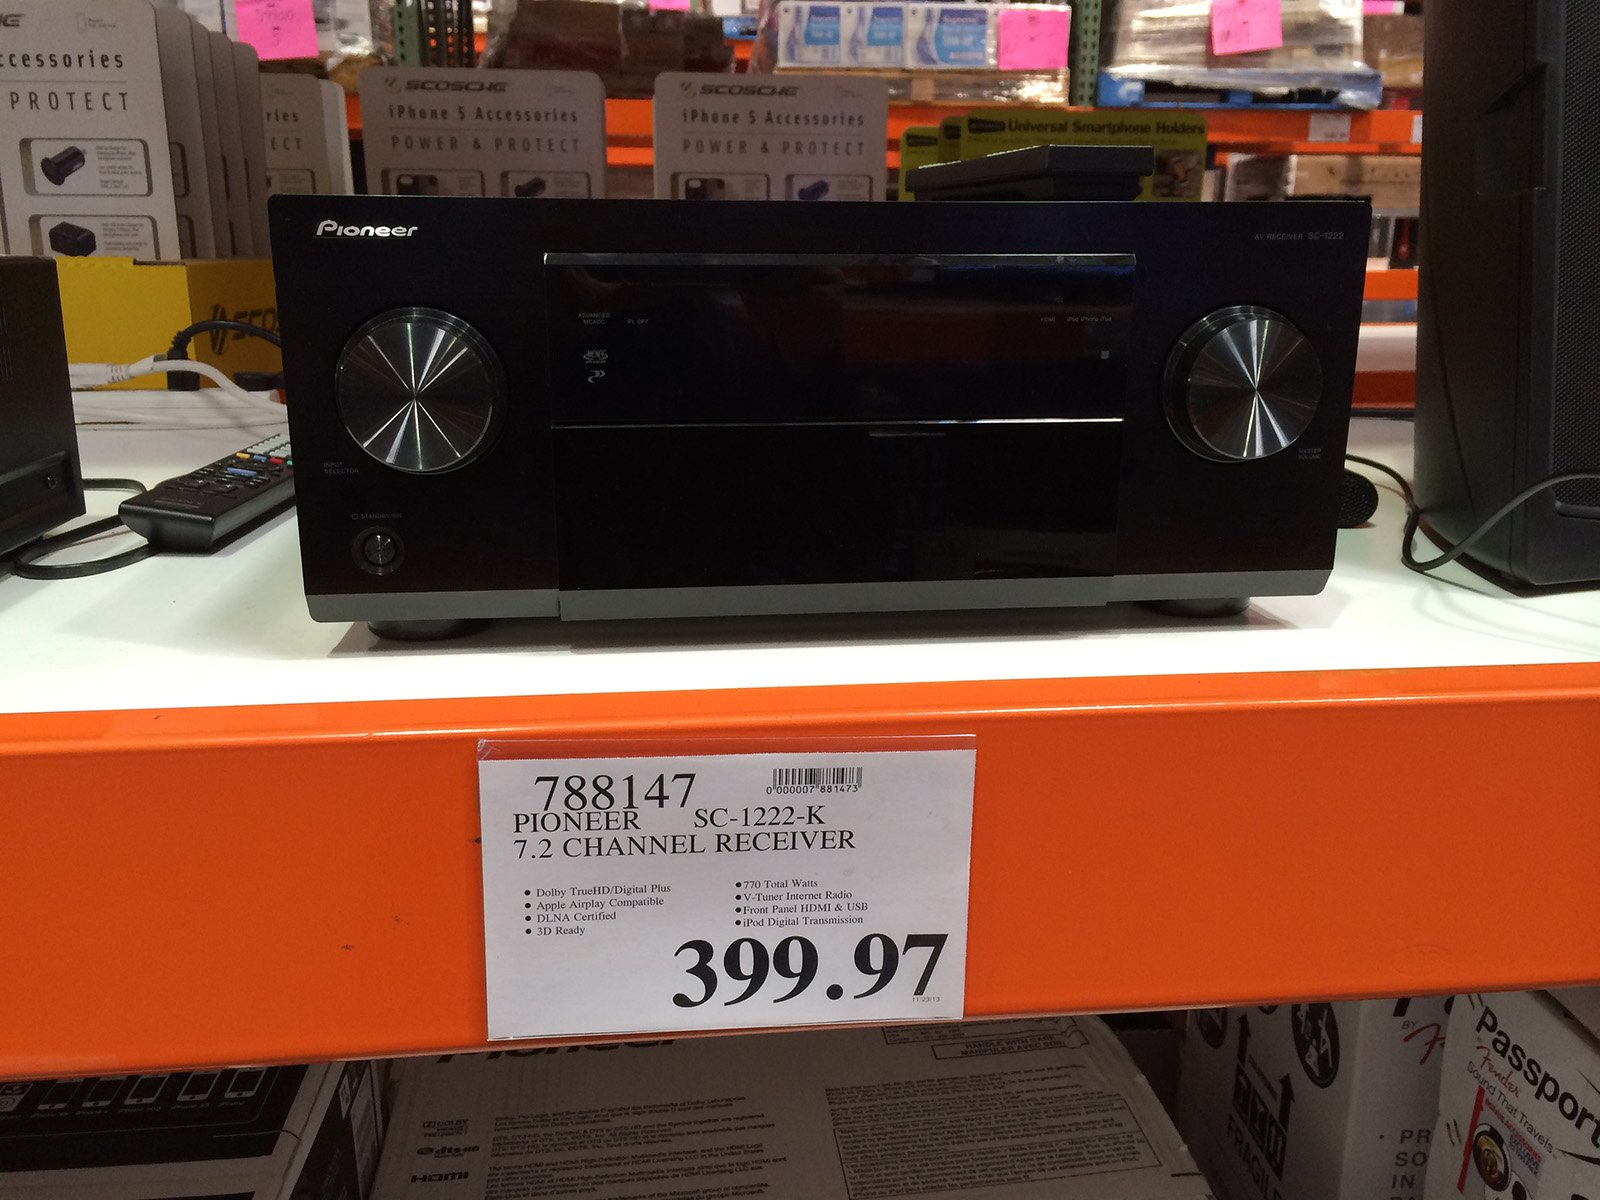 Pioneer Sc 1522k For 59999 At Costco Page 19 Avs Forum Home